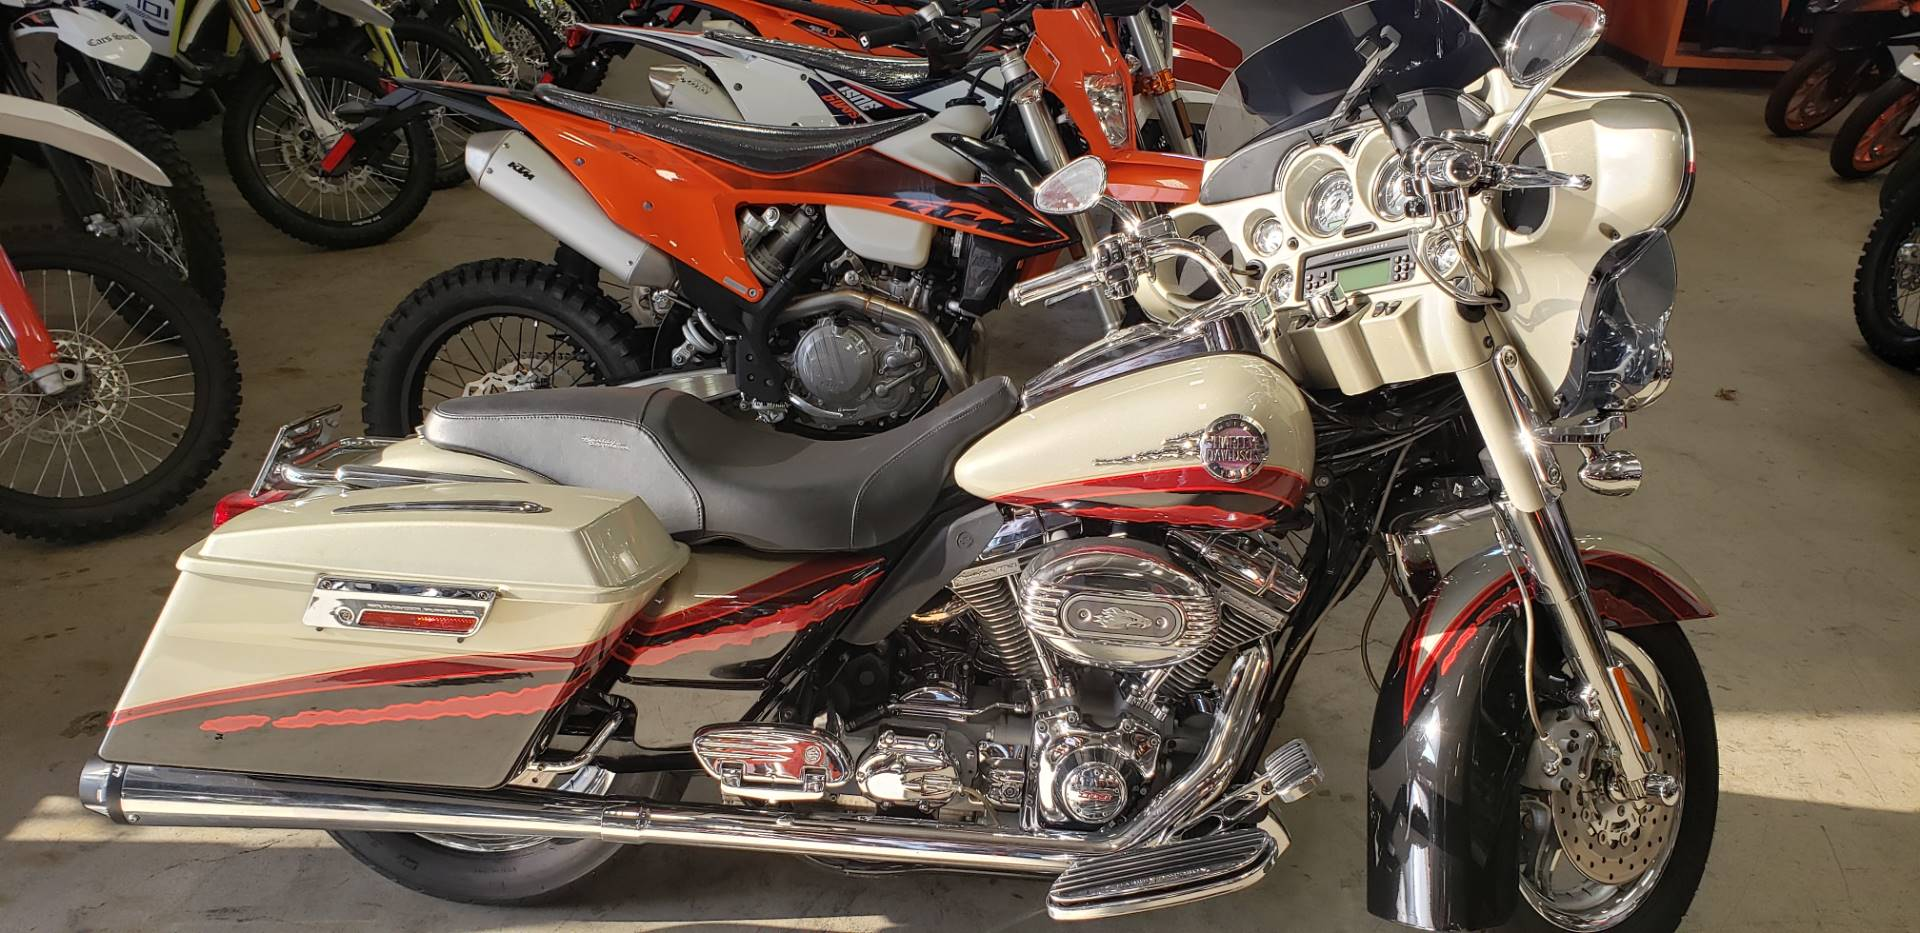 2006 Harley-Davidson FLHTCUSE SCREAMIN EAGLE in Orange, California - Photo 1